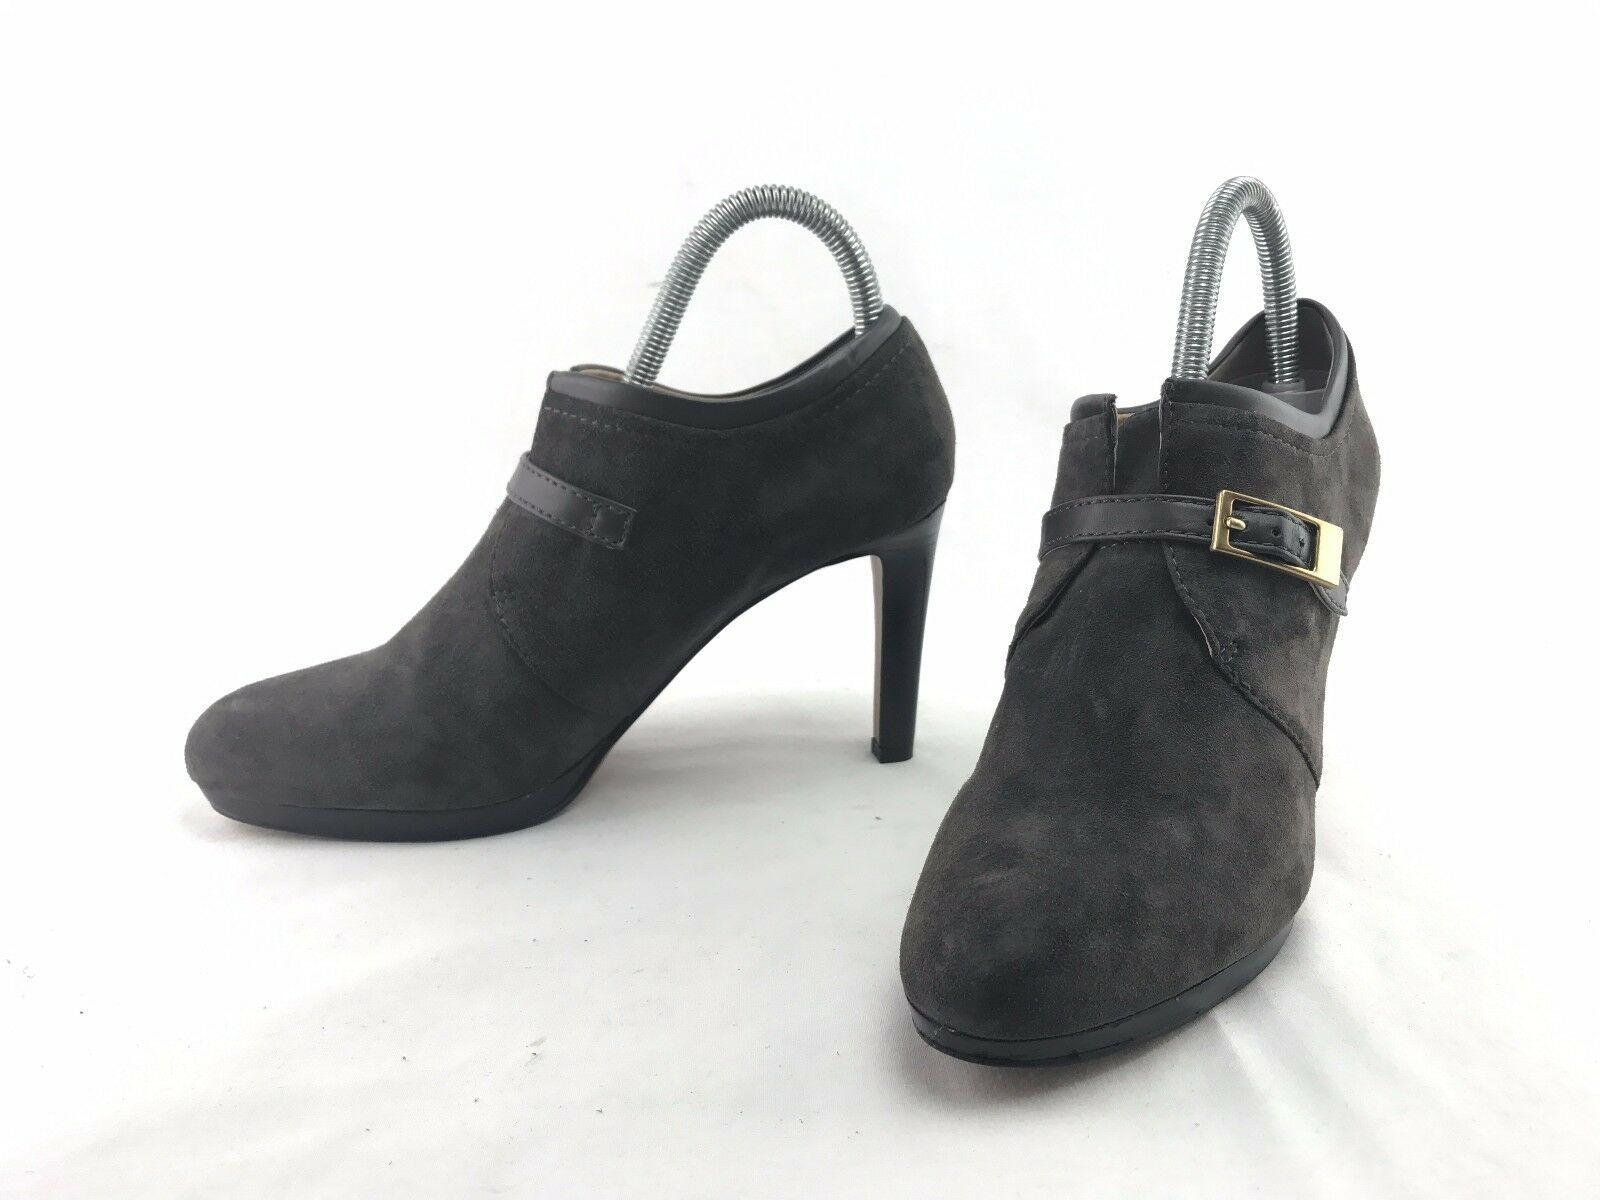 NEW Franco Sarto Sabelle Damens's Grau Suede Boot Heels Schuhes US Größe 8 M Schuhes Heels #A208 462d20